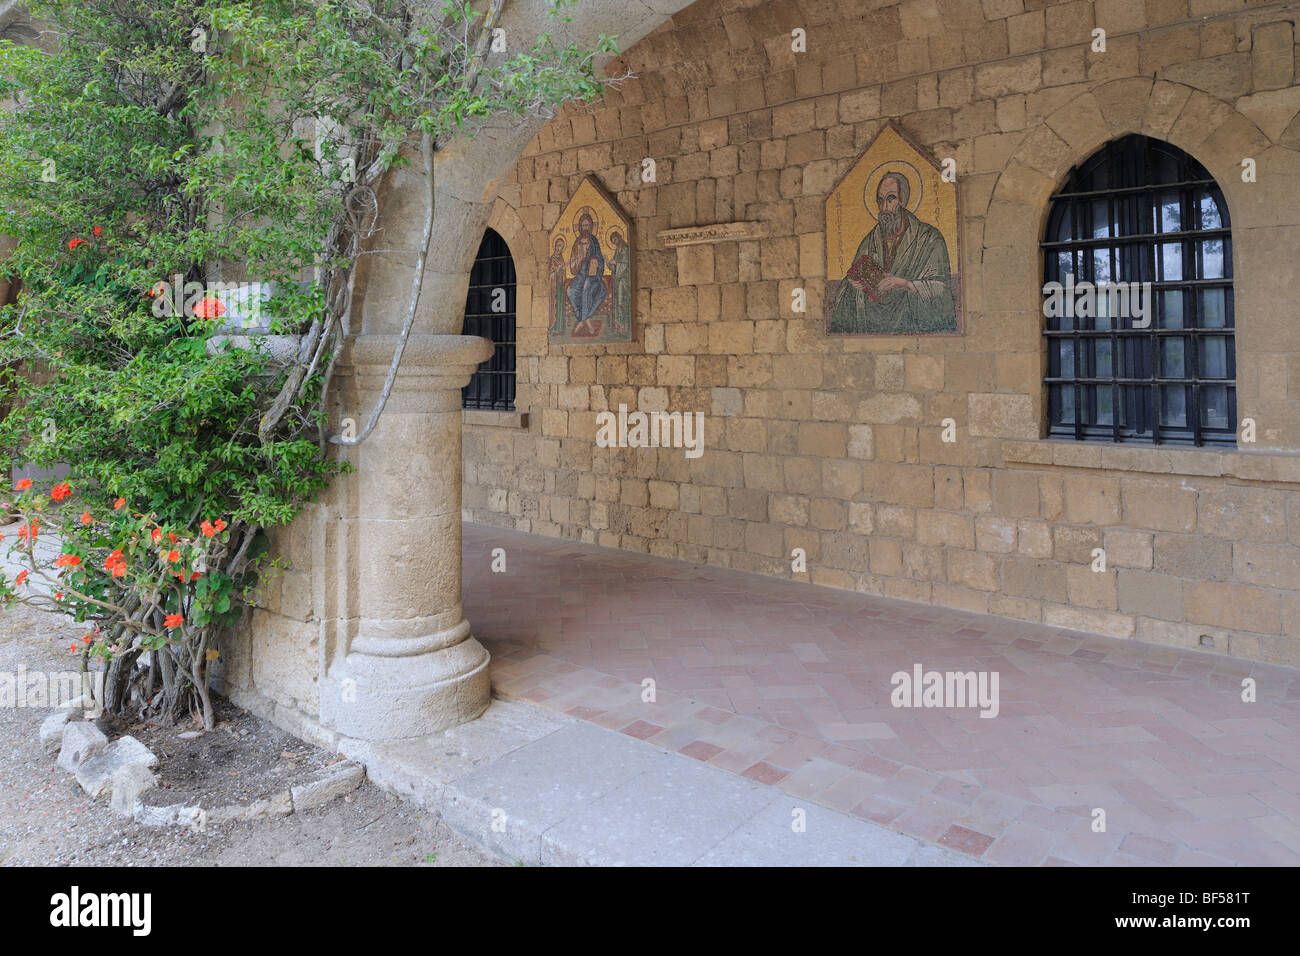 Reconstruction by Italians of the former convent of St. John, Filérimos, Rhodes, Greece, Europe - Stock Image